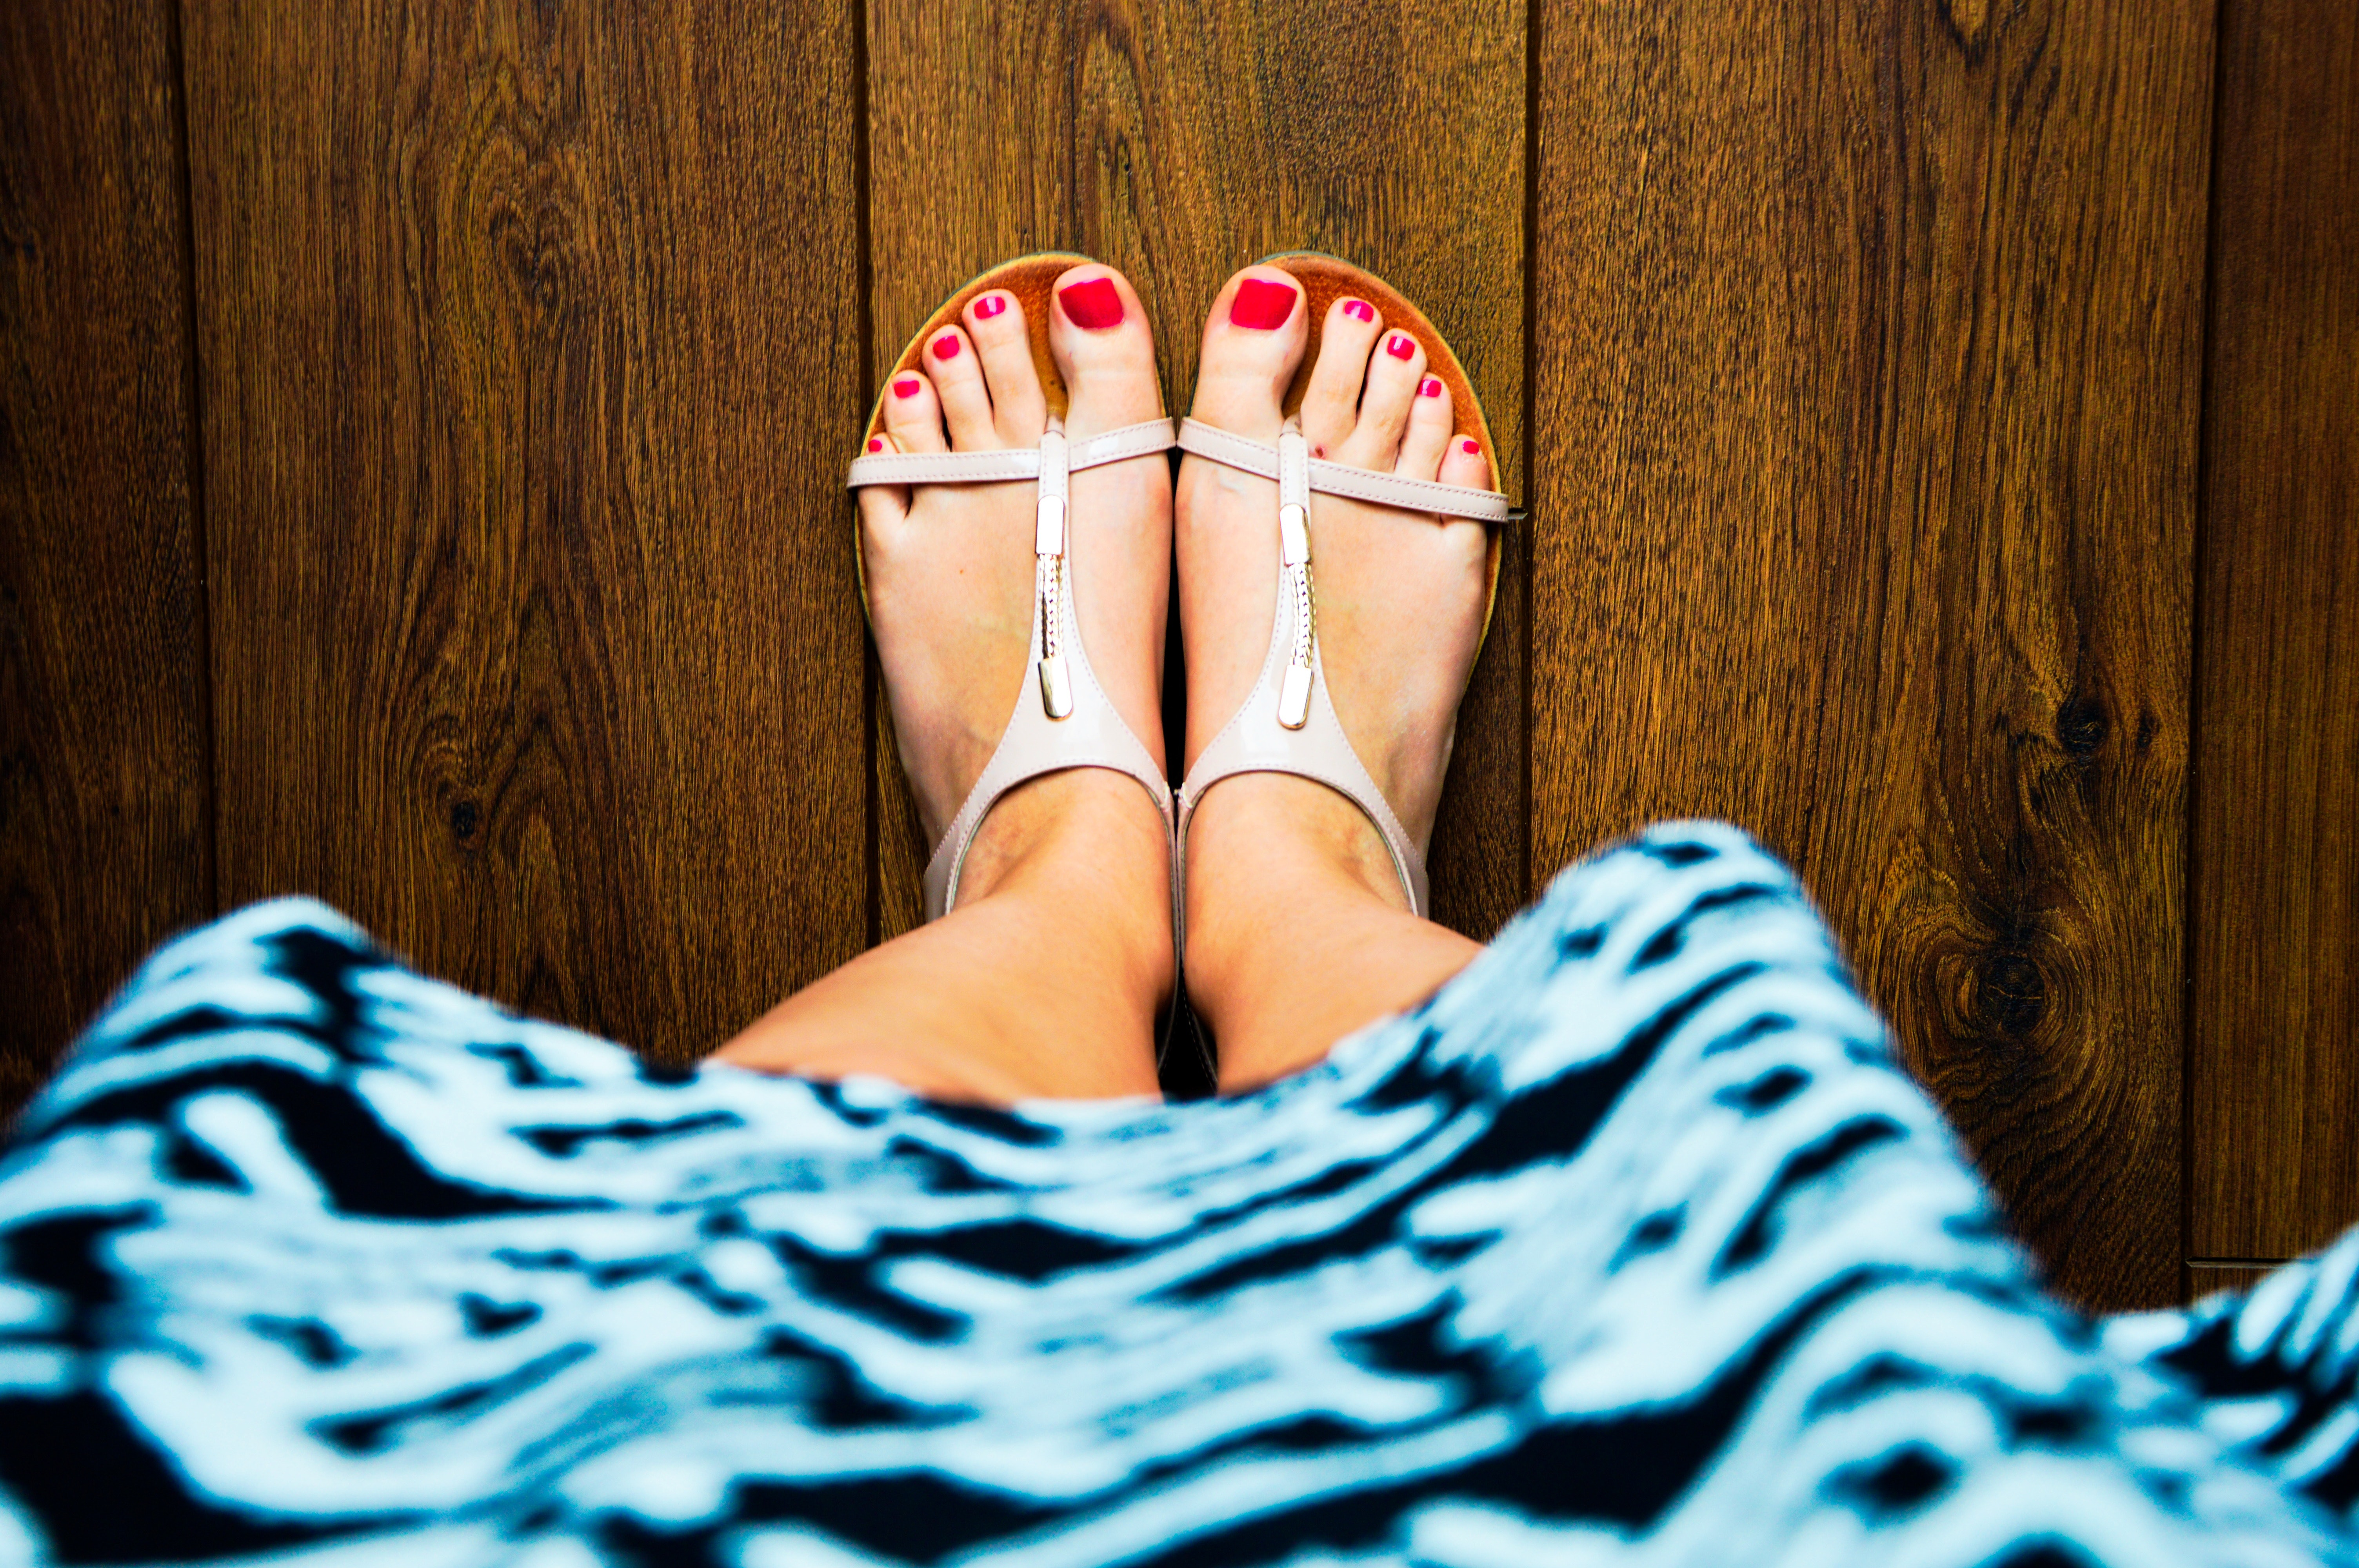 Wish Nail Pedicurists You Wear Things 9 To Appointments Your Wouldn't thrdsQ